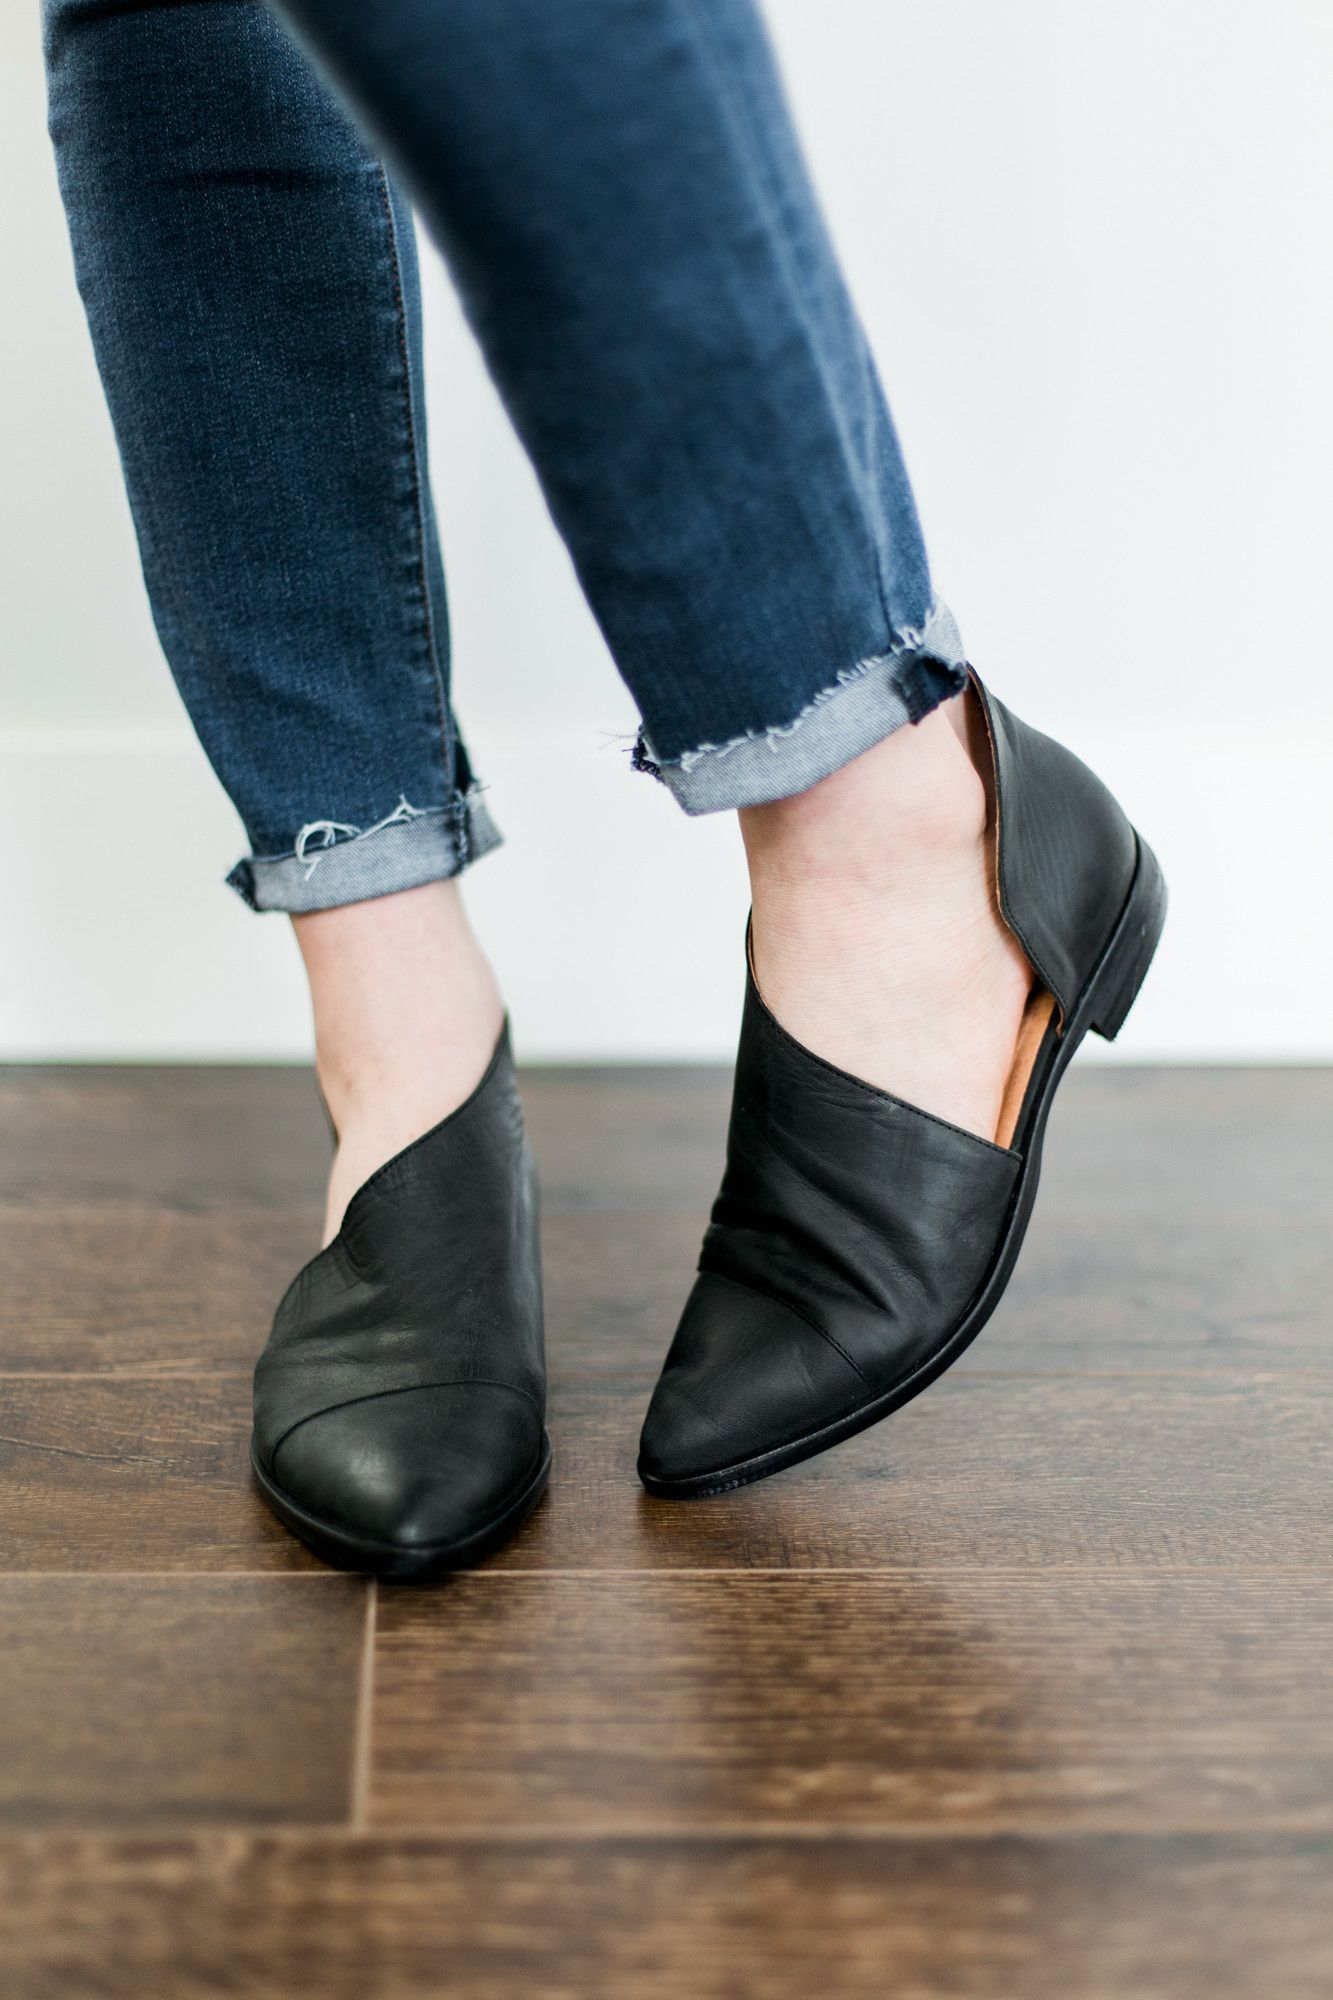 Free People Royale Flat Black Shoes Shoes Shoe Boots